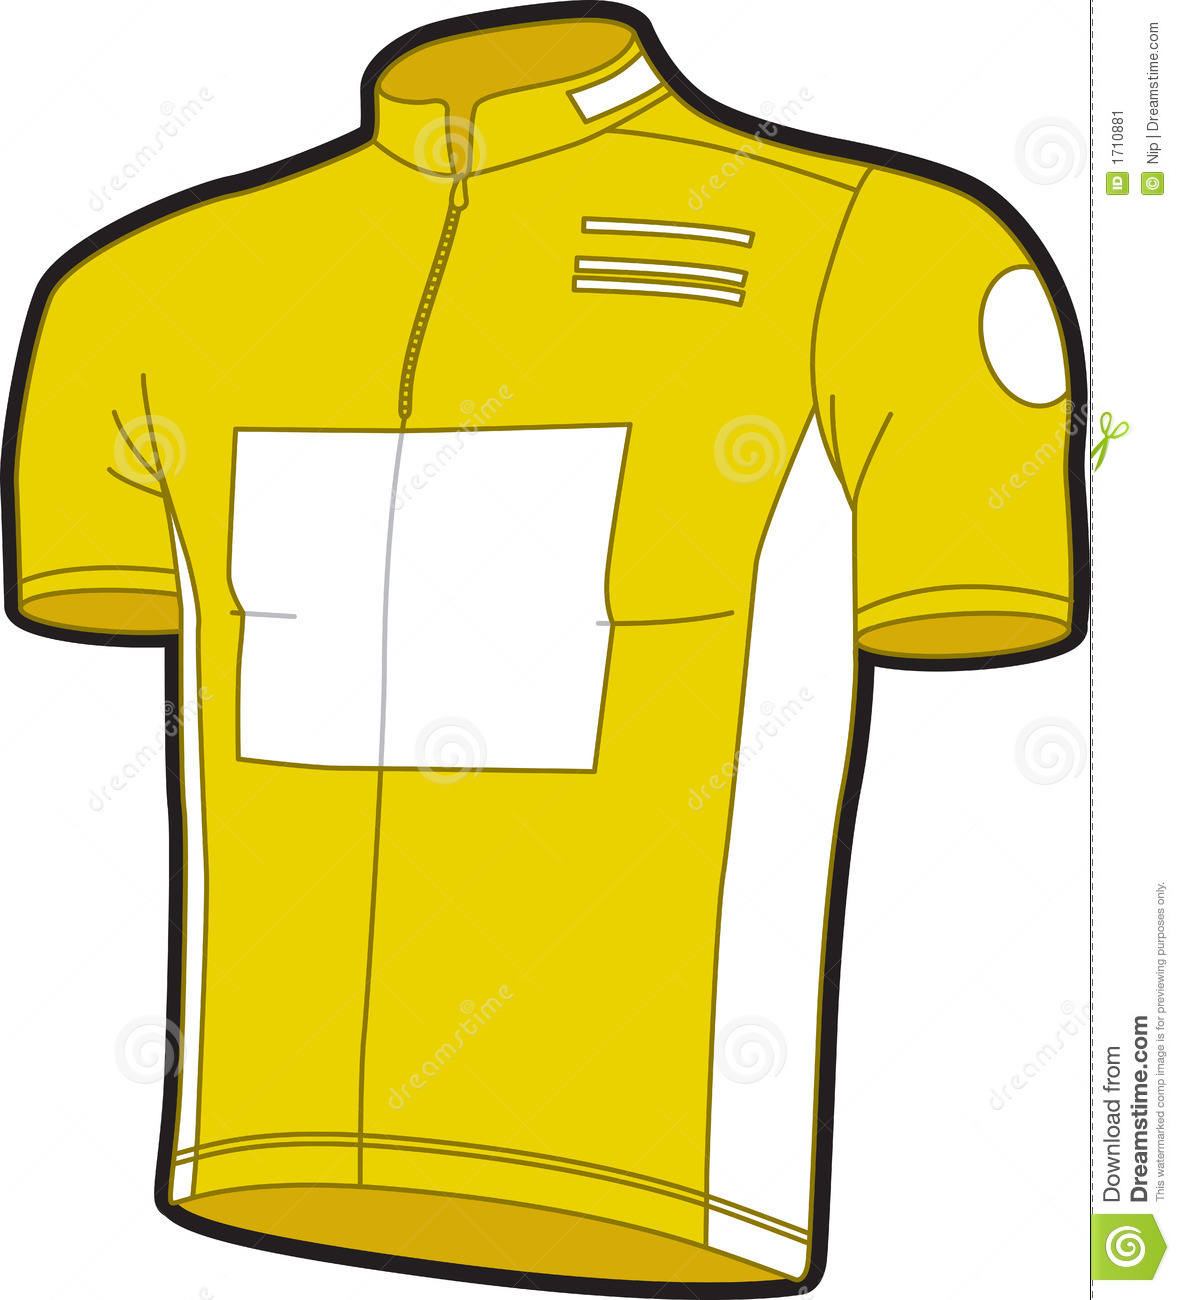 Bike jersey stock vector. Illustration of cycling yellow - 1710881